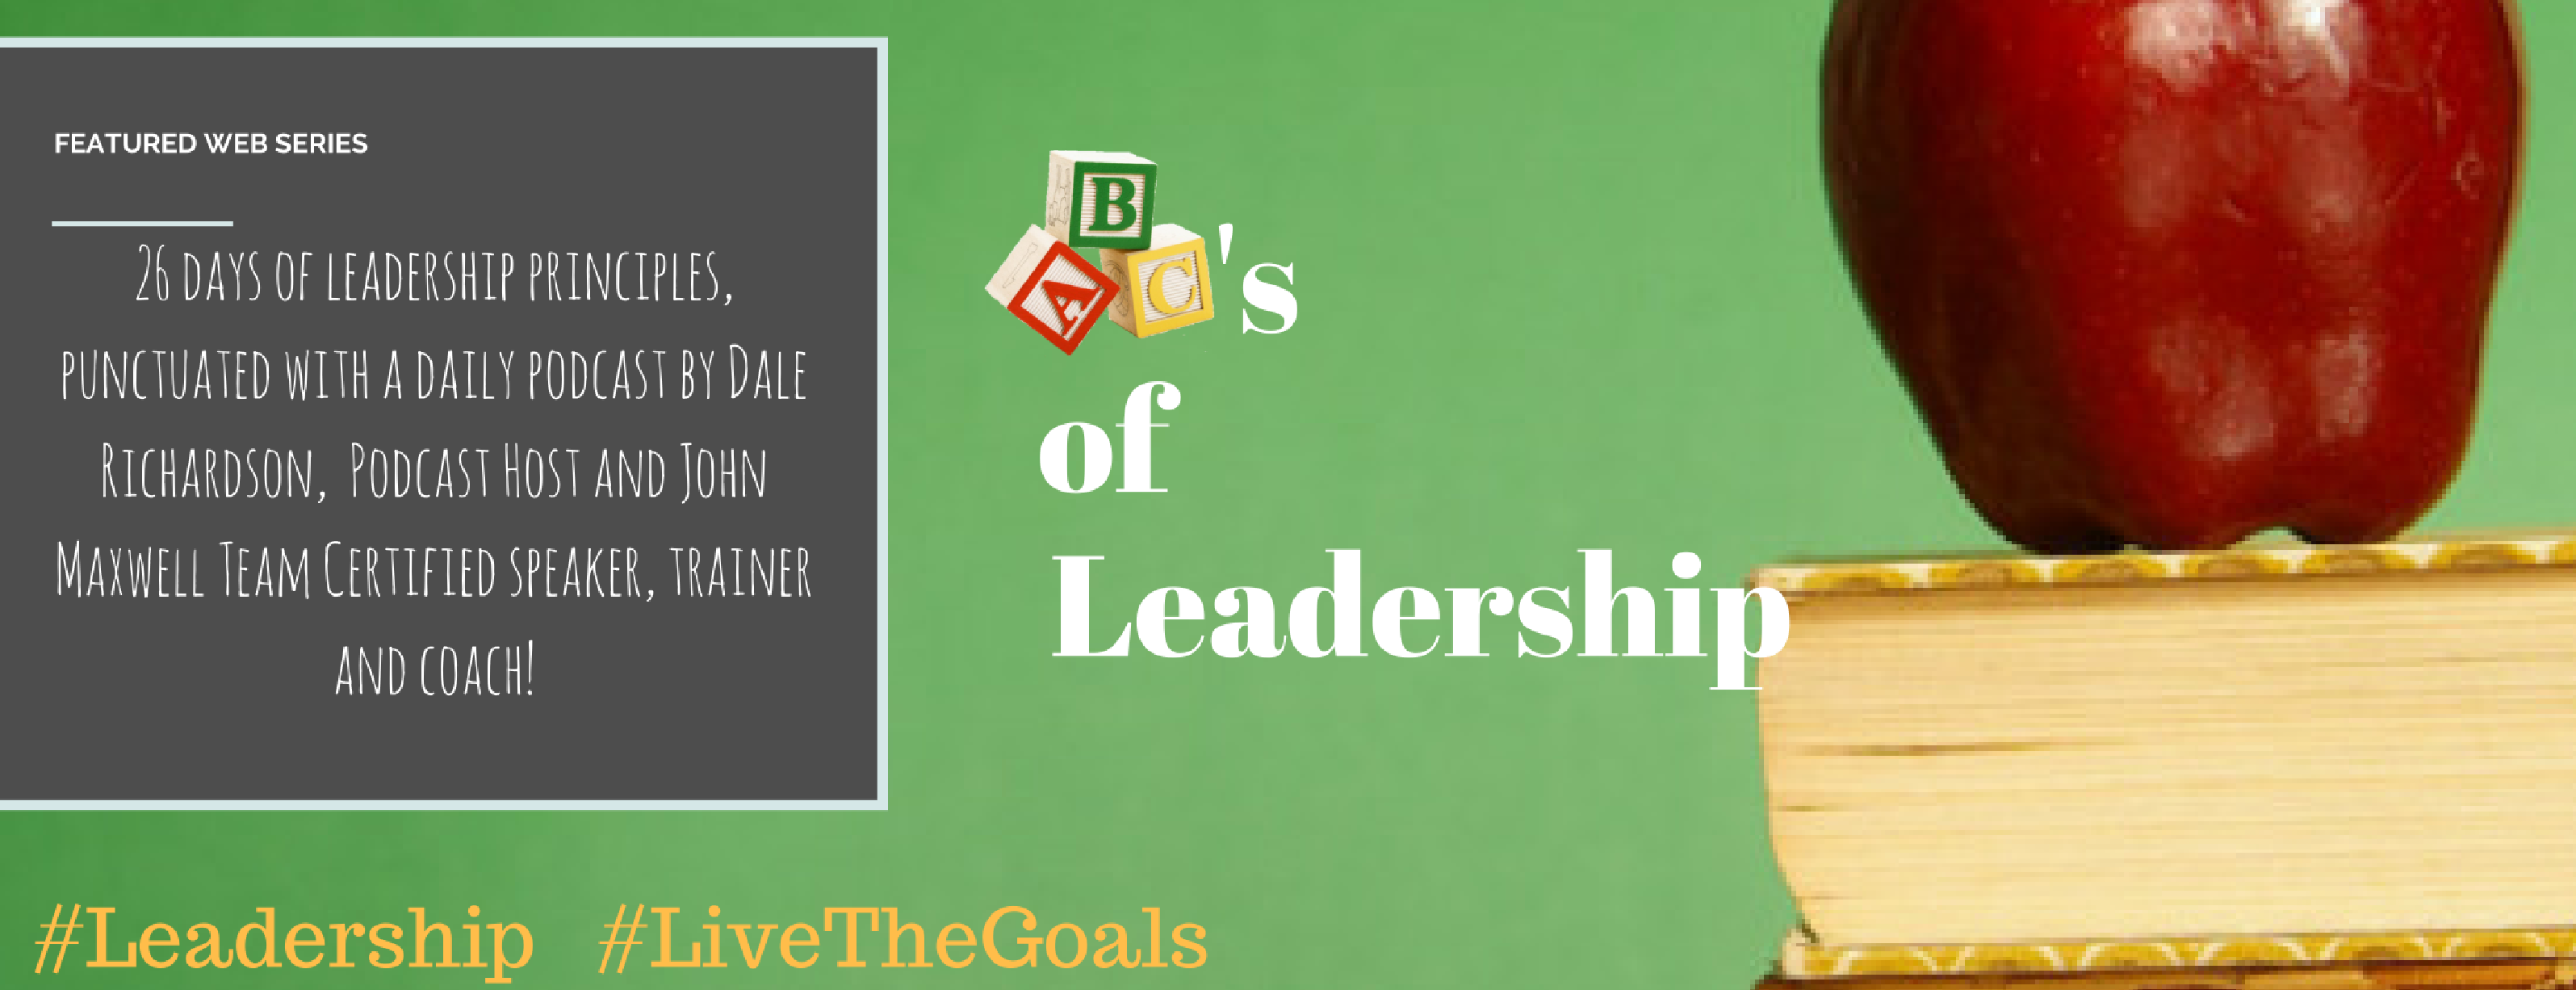 ABC's of Leadership (Header) Green